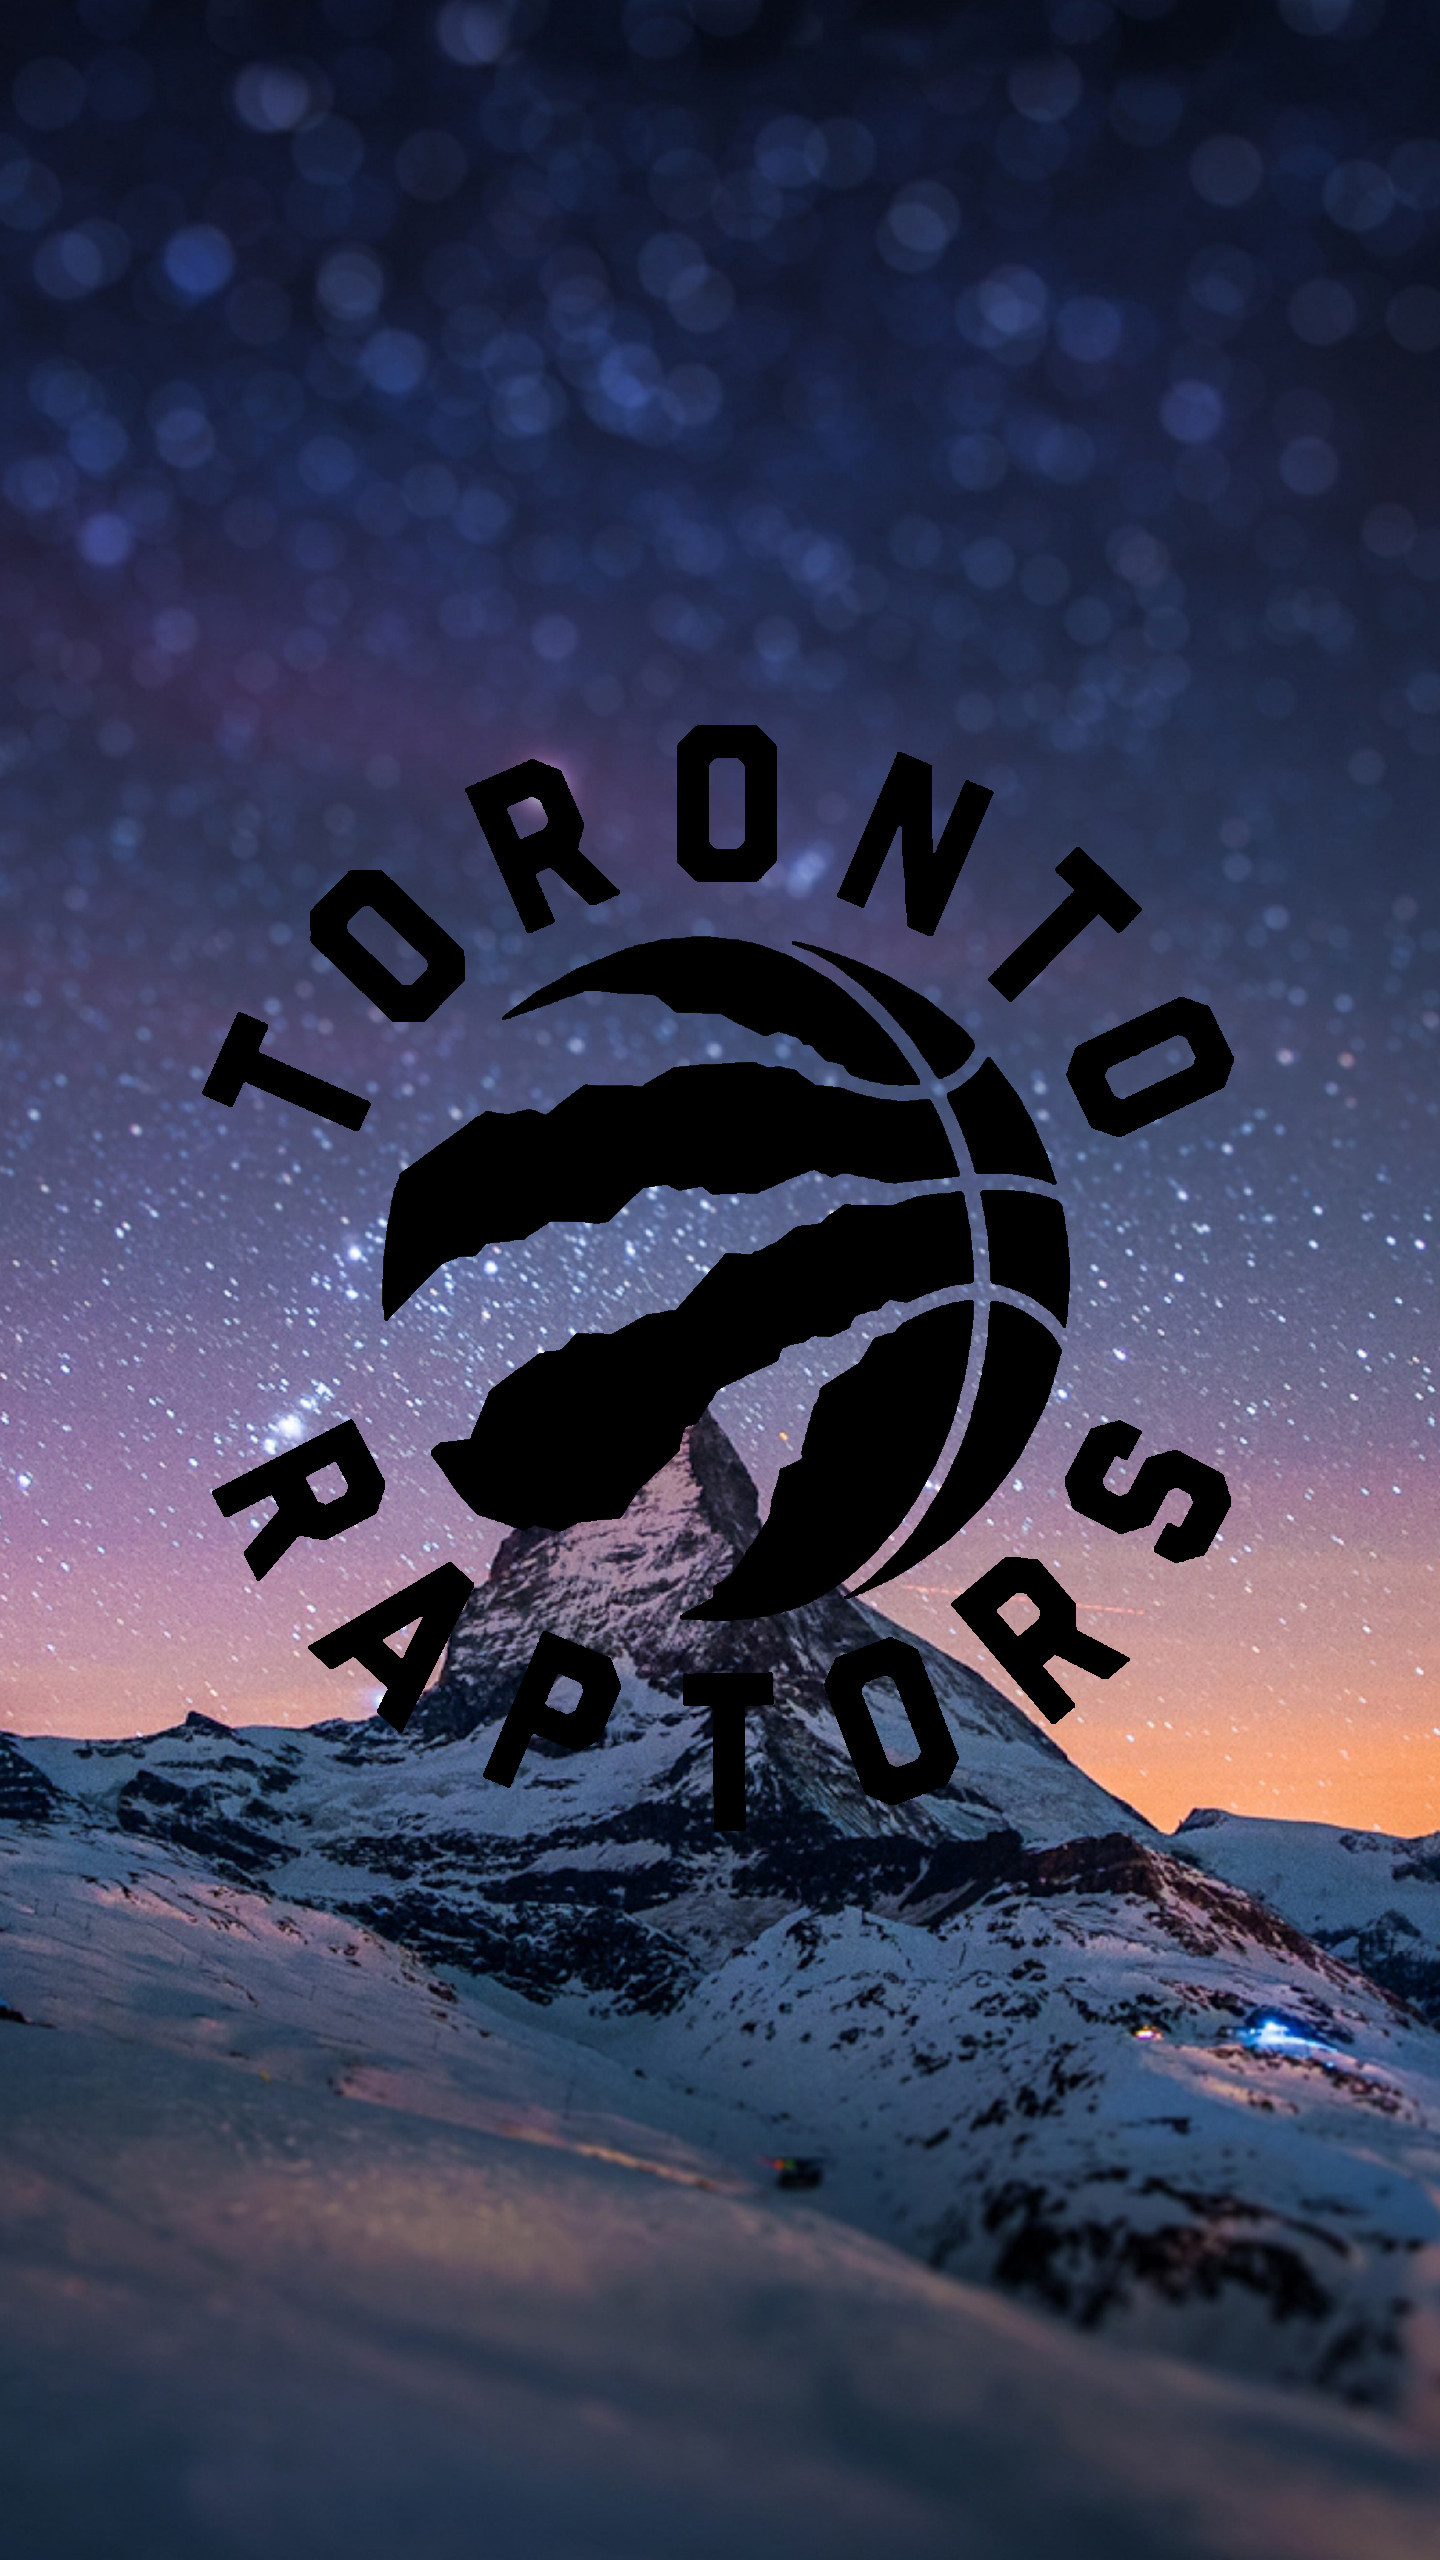 Created Some Toronto Raptors Phone Wallpapers (Added iPhone and Desktop)